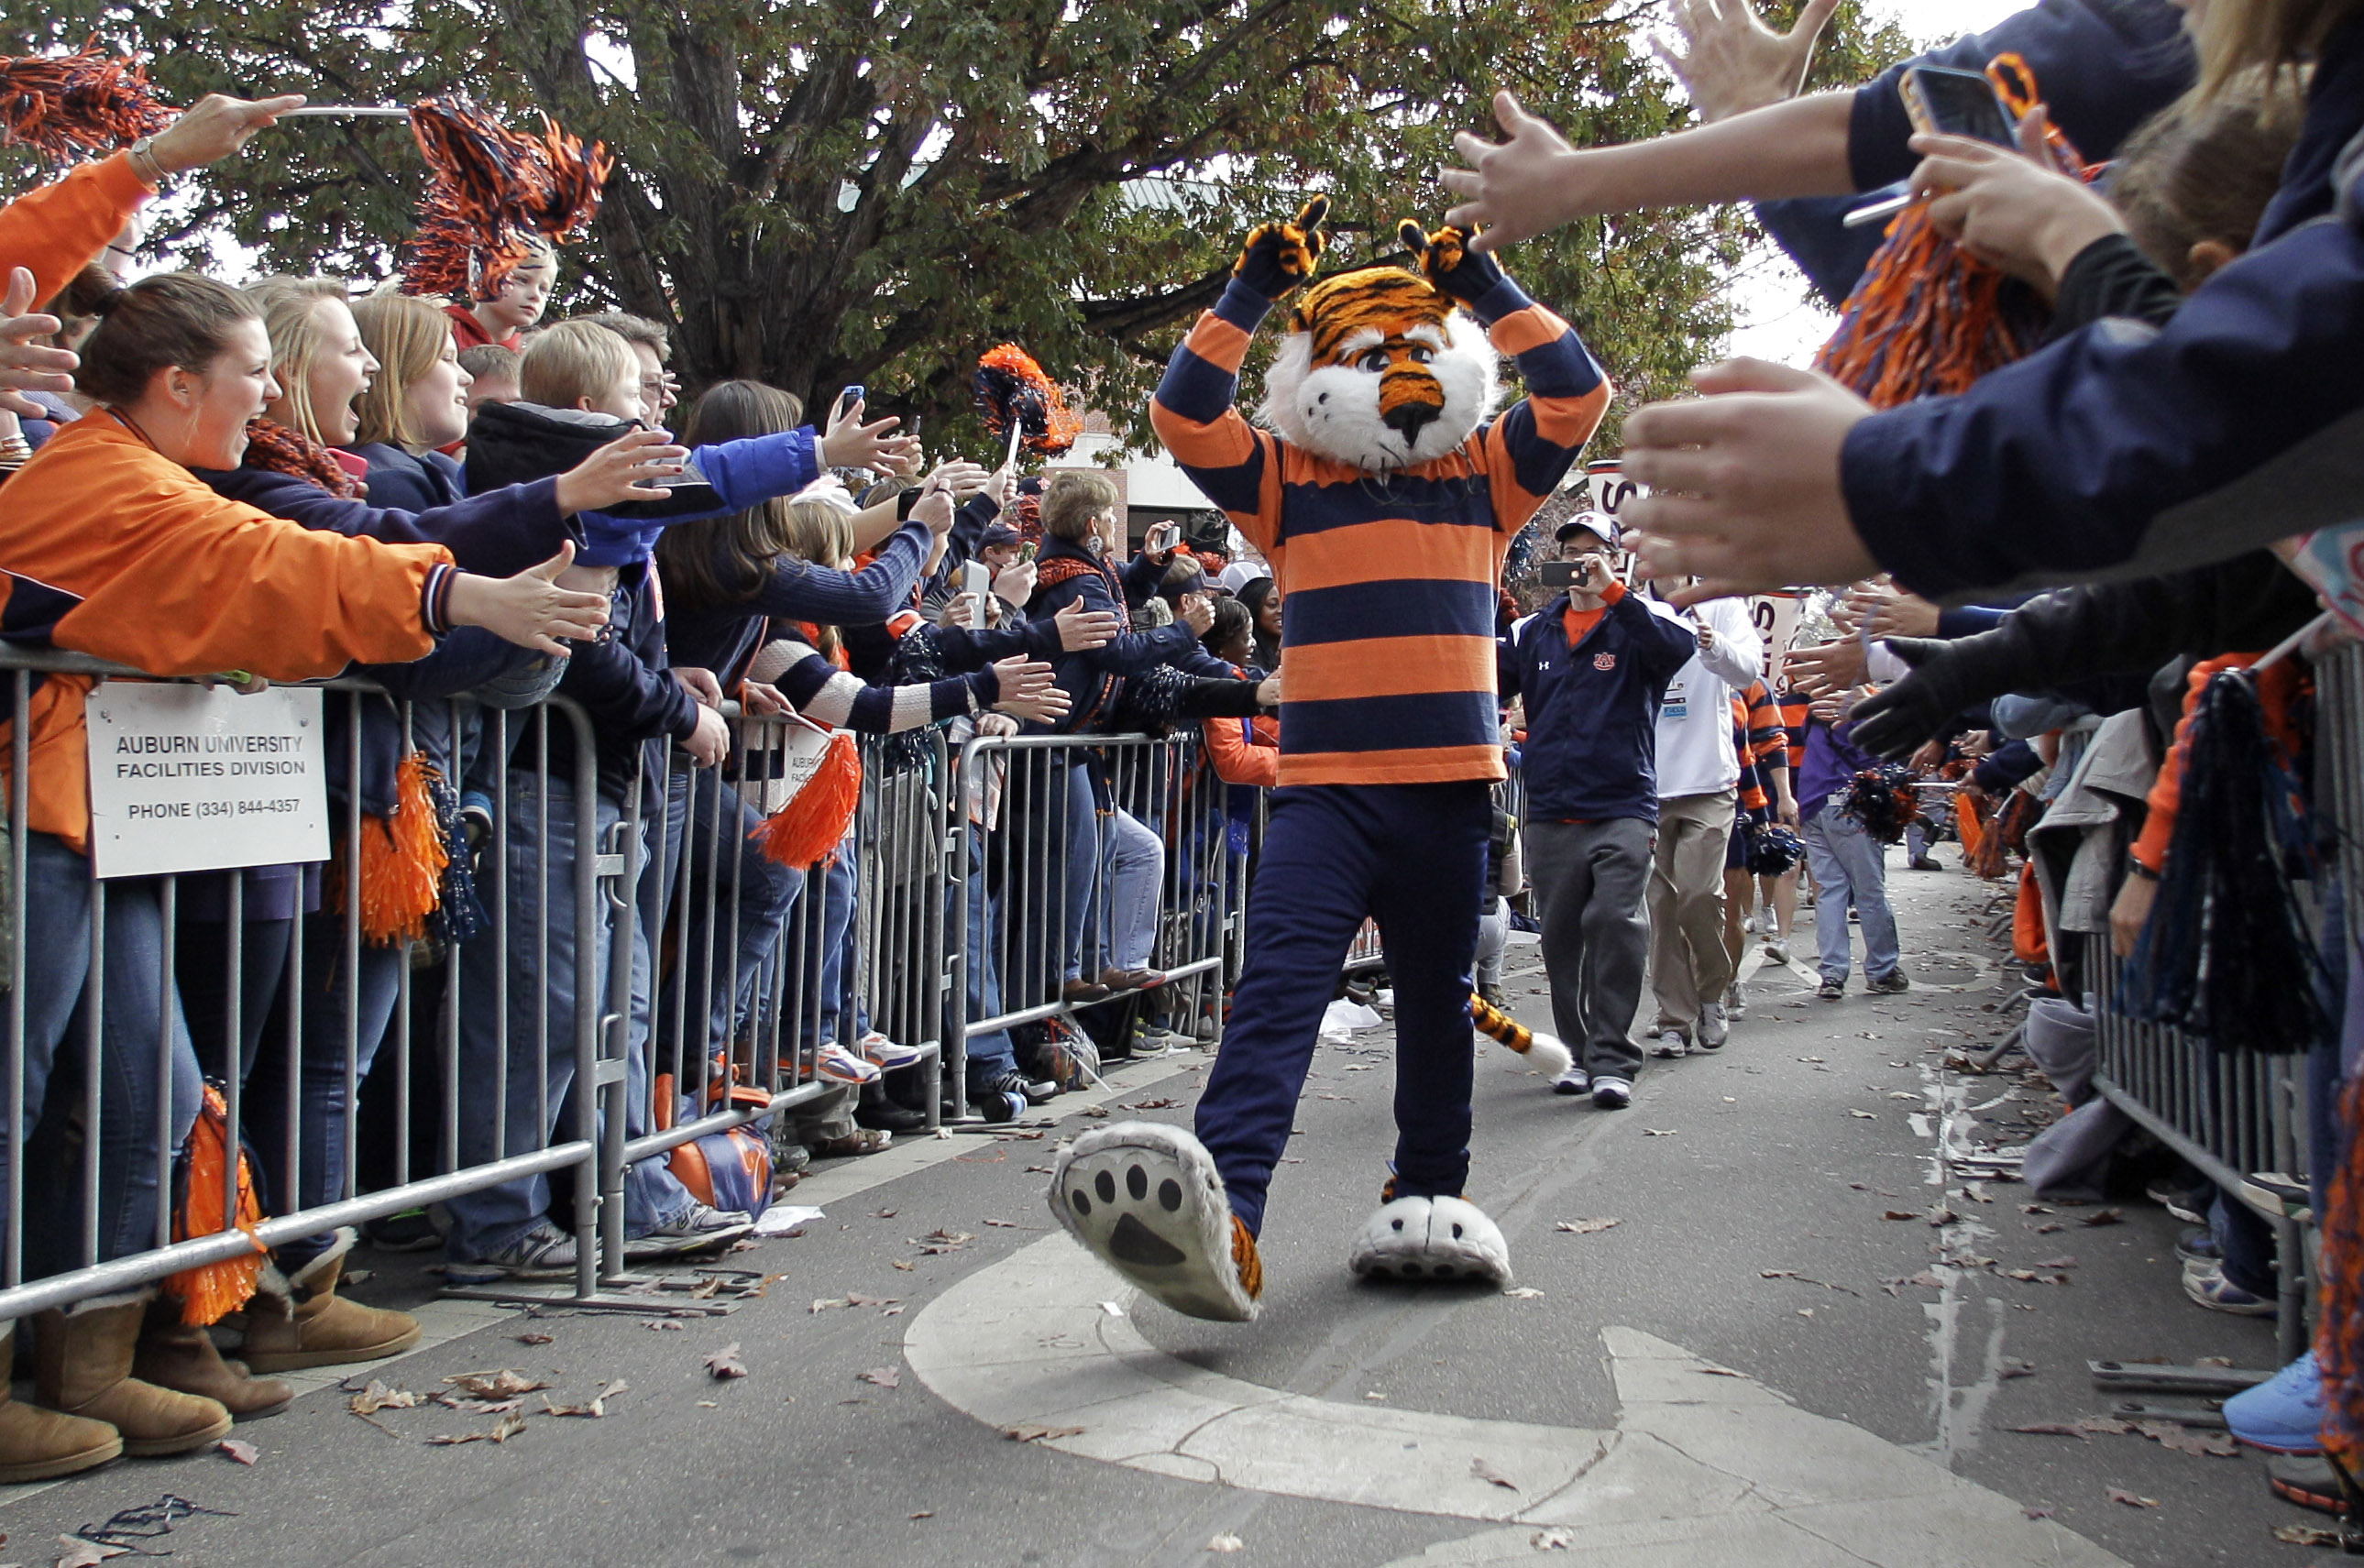 This is awesome enough to warrant Iron Bowl Rugby Shirt Aubie